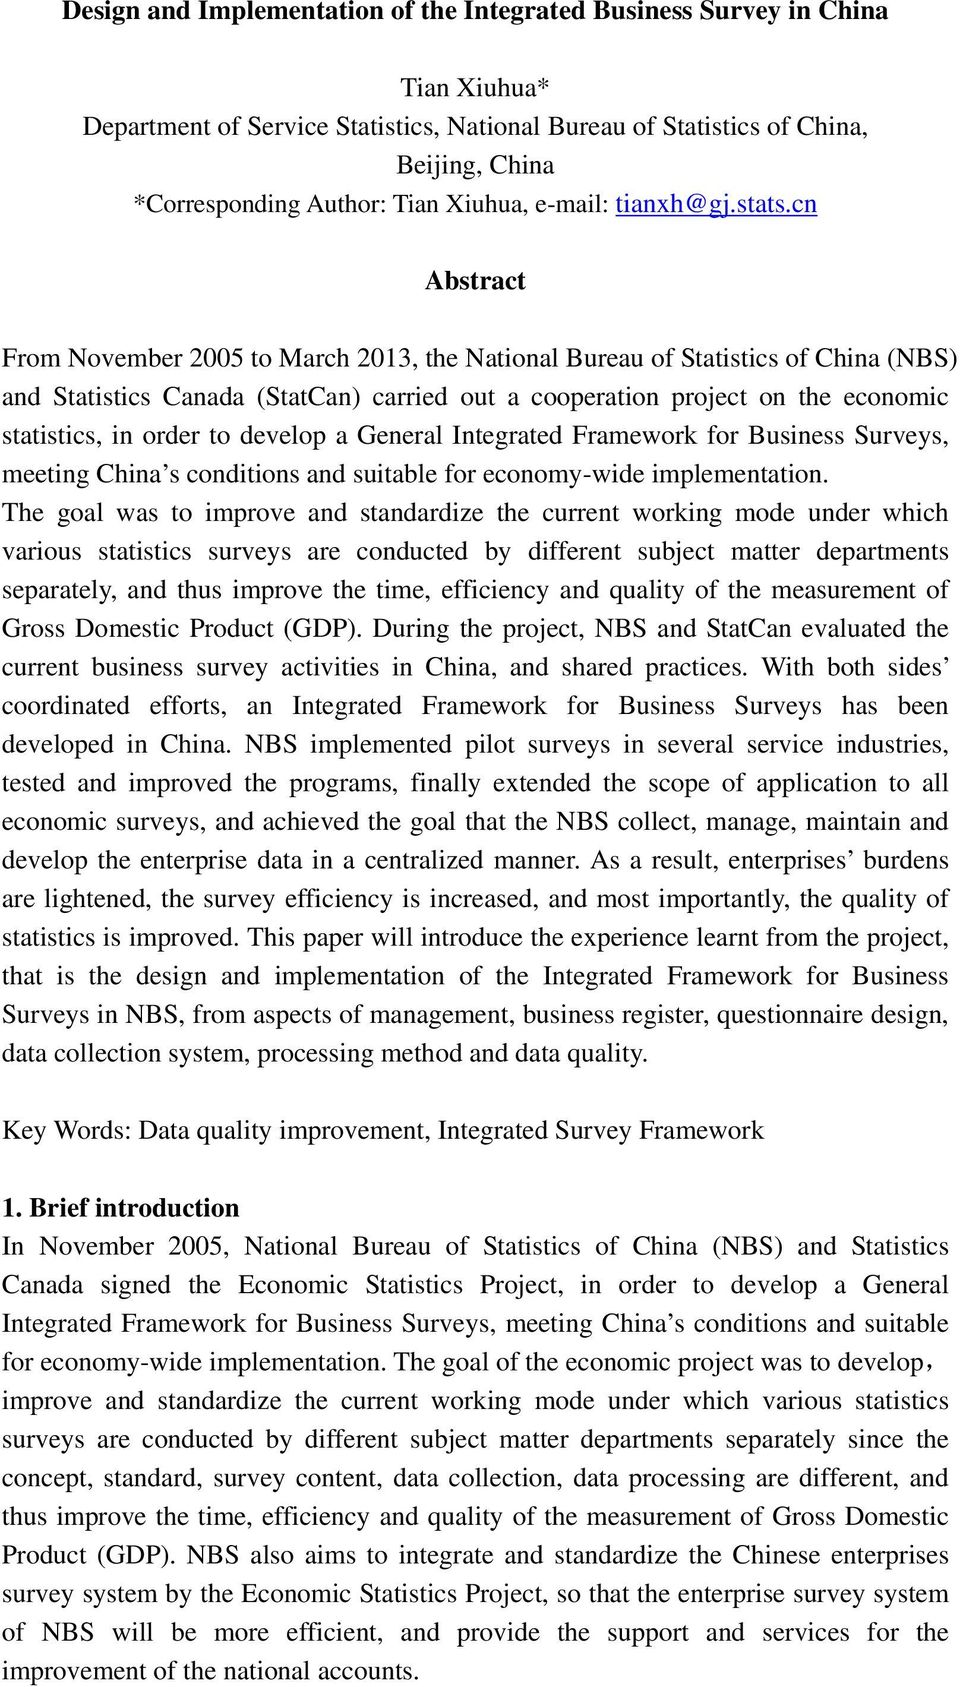 cn Abstract From November 2005 to March 2013, the National Bureau of Statistics of China (NBS) and Statistics Canada (StatCan) carried out a cooperation project on the economic statistics, in order